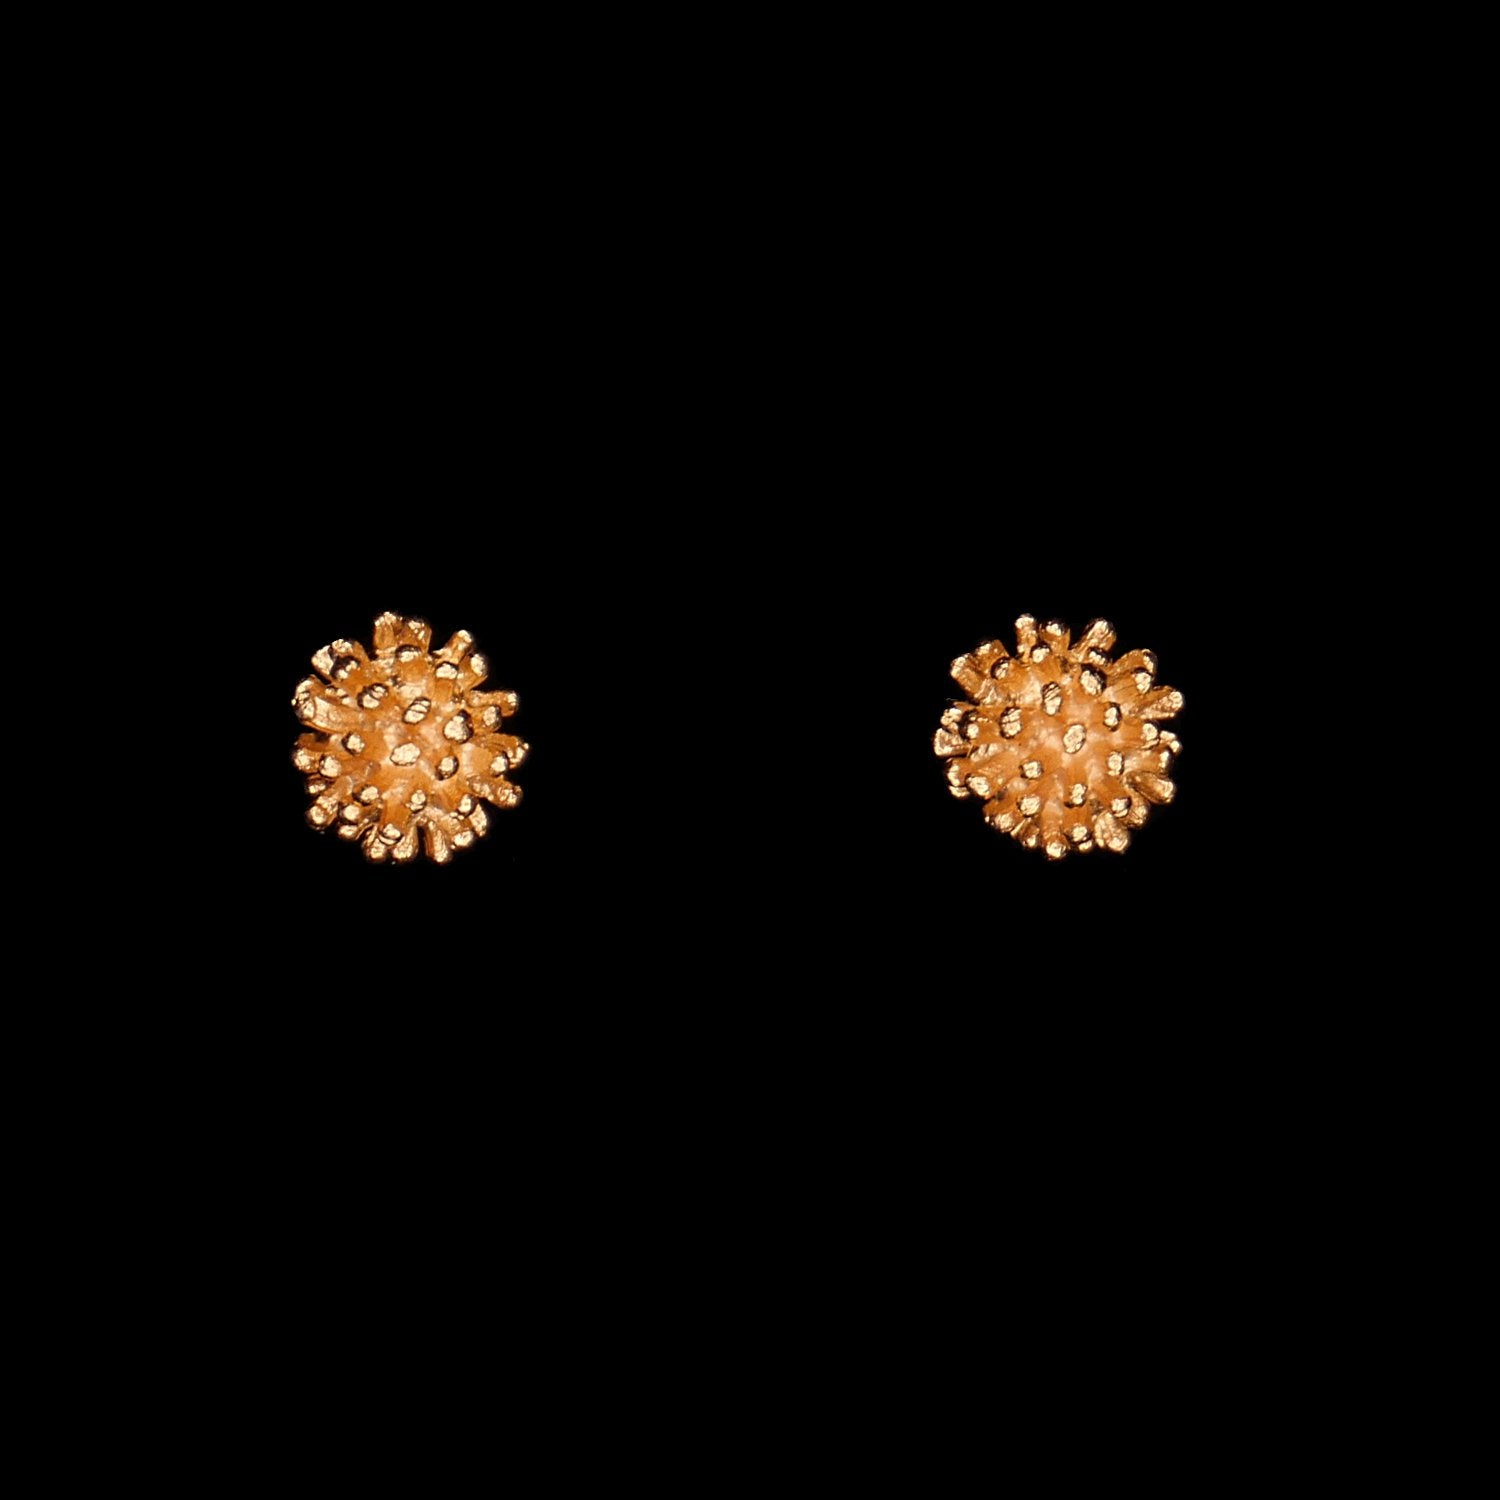 Gone To Seed Earrings - Small Stud Gold